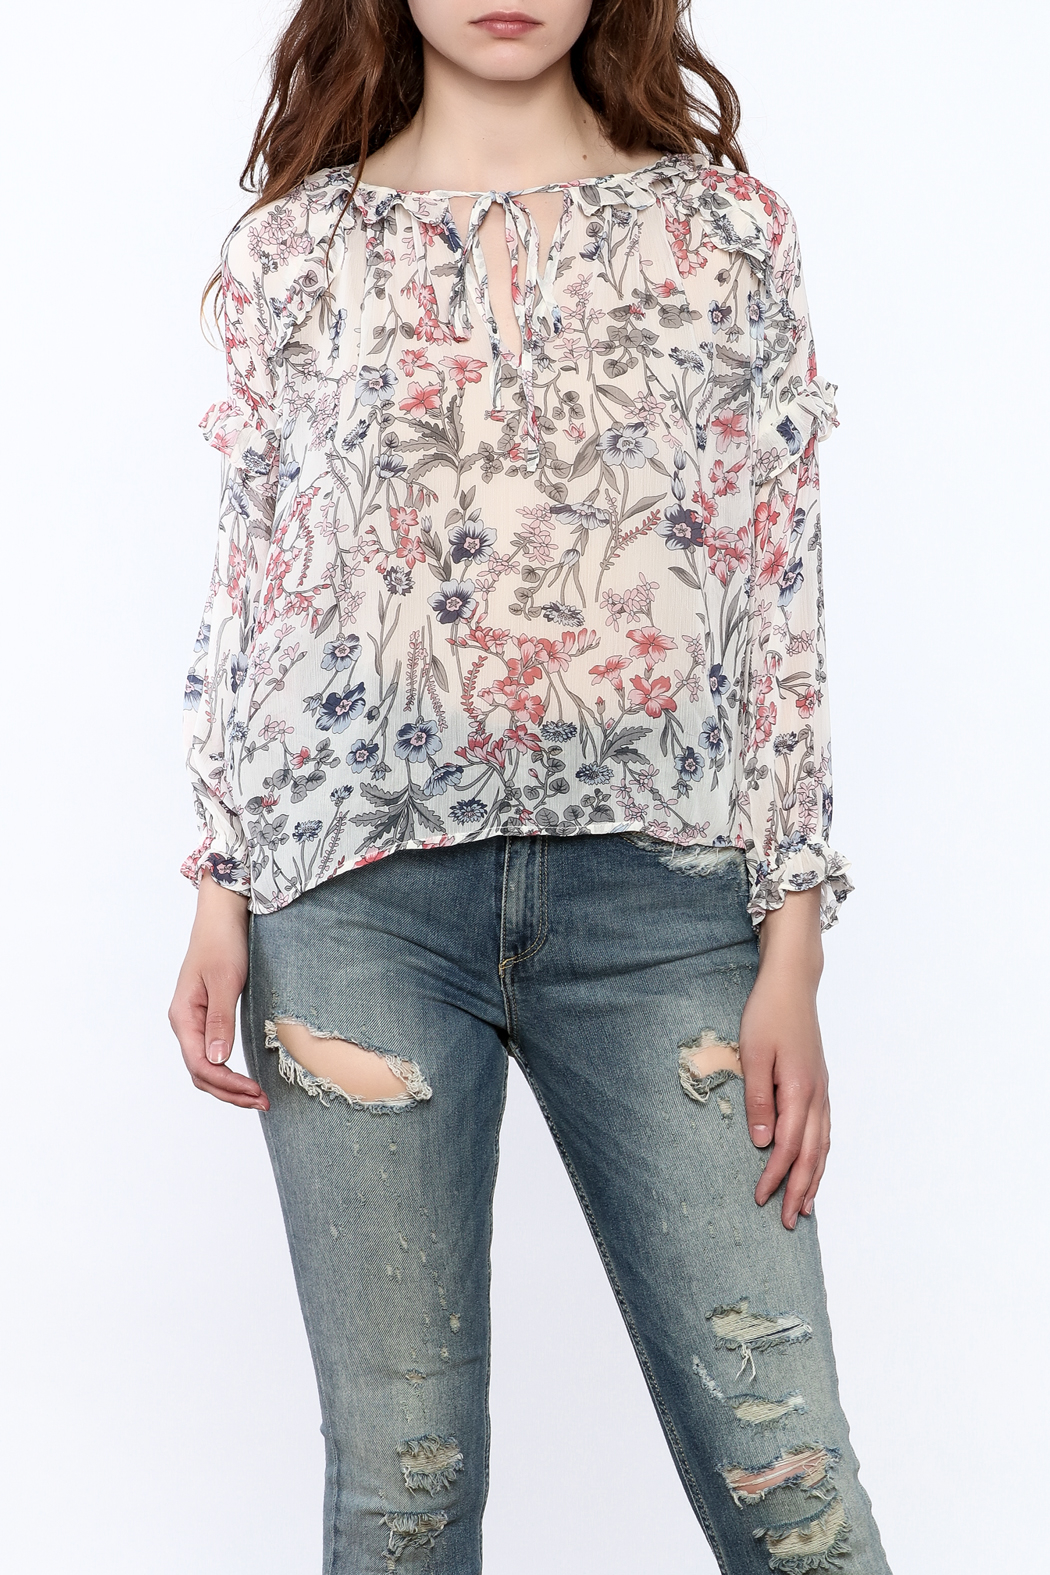 re:named Lightweight Floral Print Blouse - Main Image